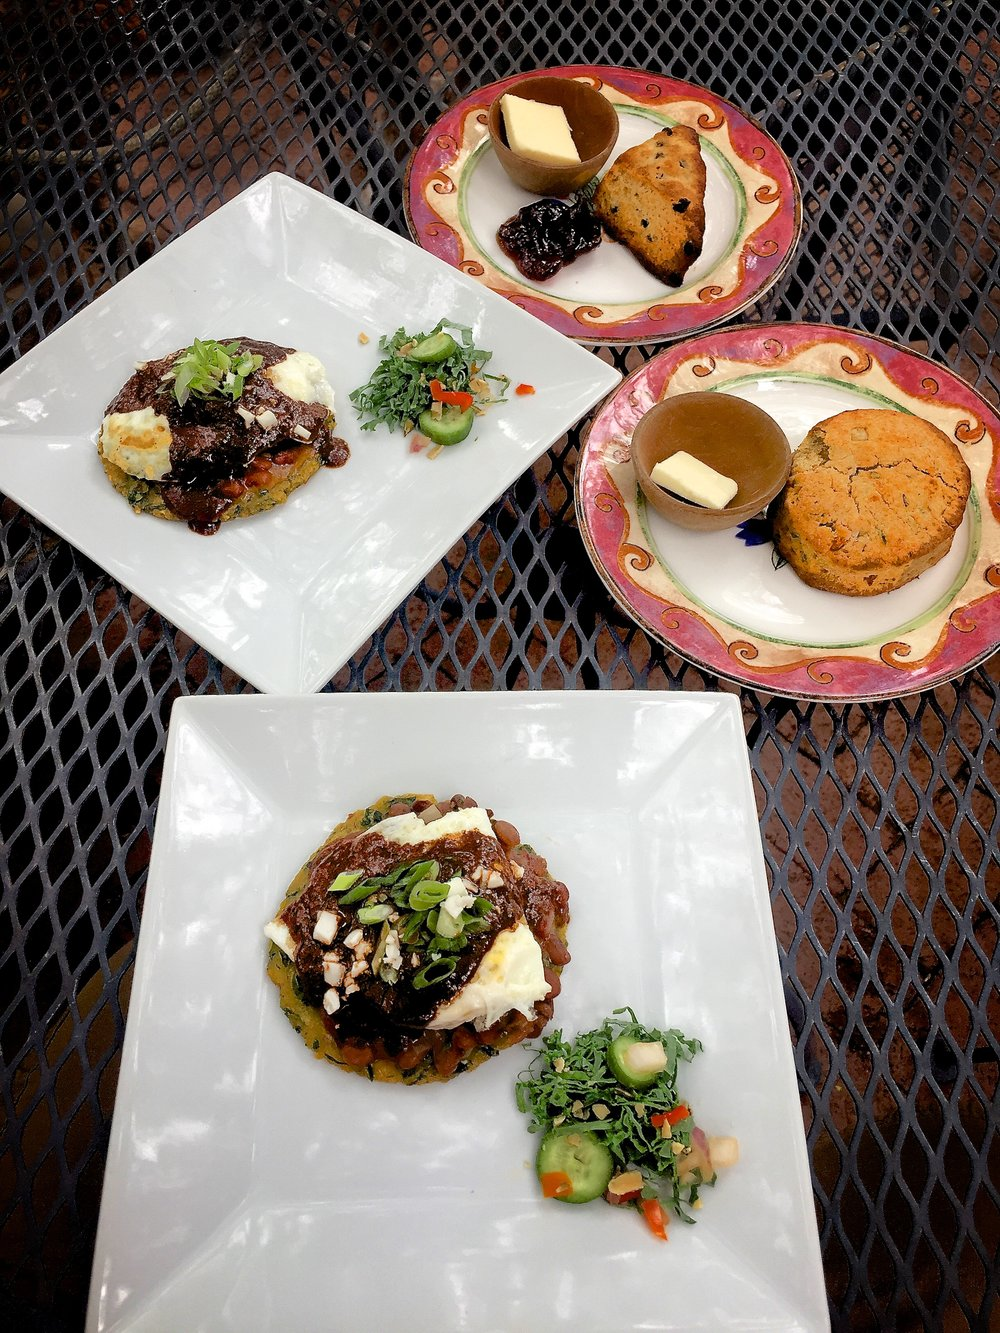 Huevos Rancheros, scones, and biscuits made for one delicious breakfast at Cafe Botanica.